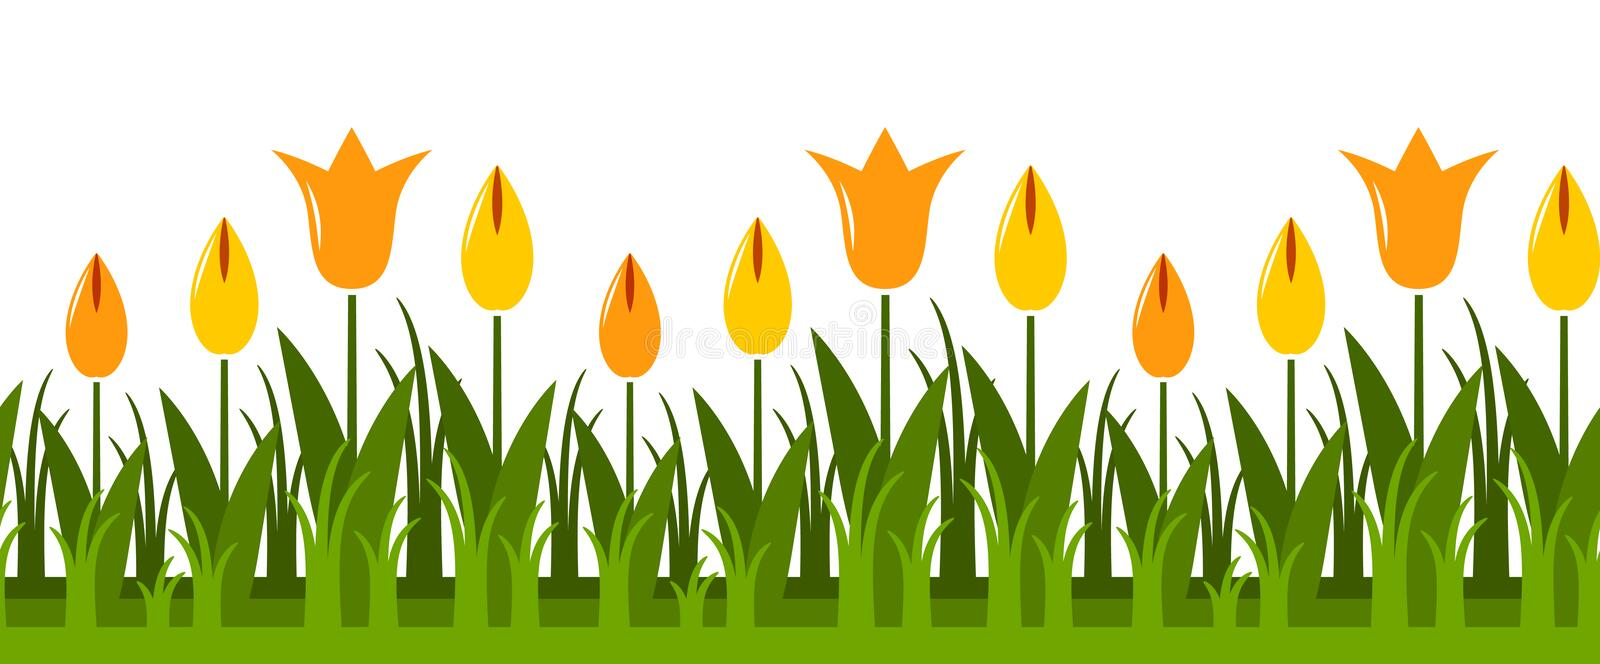 Download Tulips border stock vector. Image of border, plant, abstract - 21553665